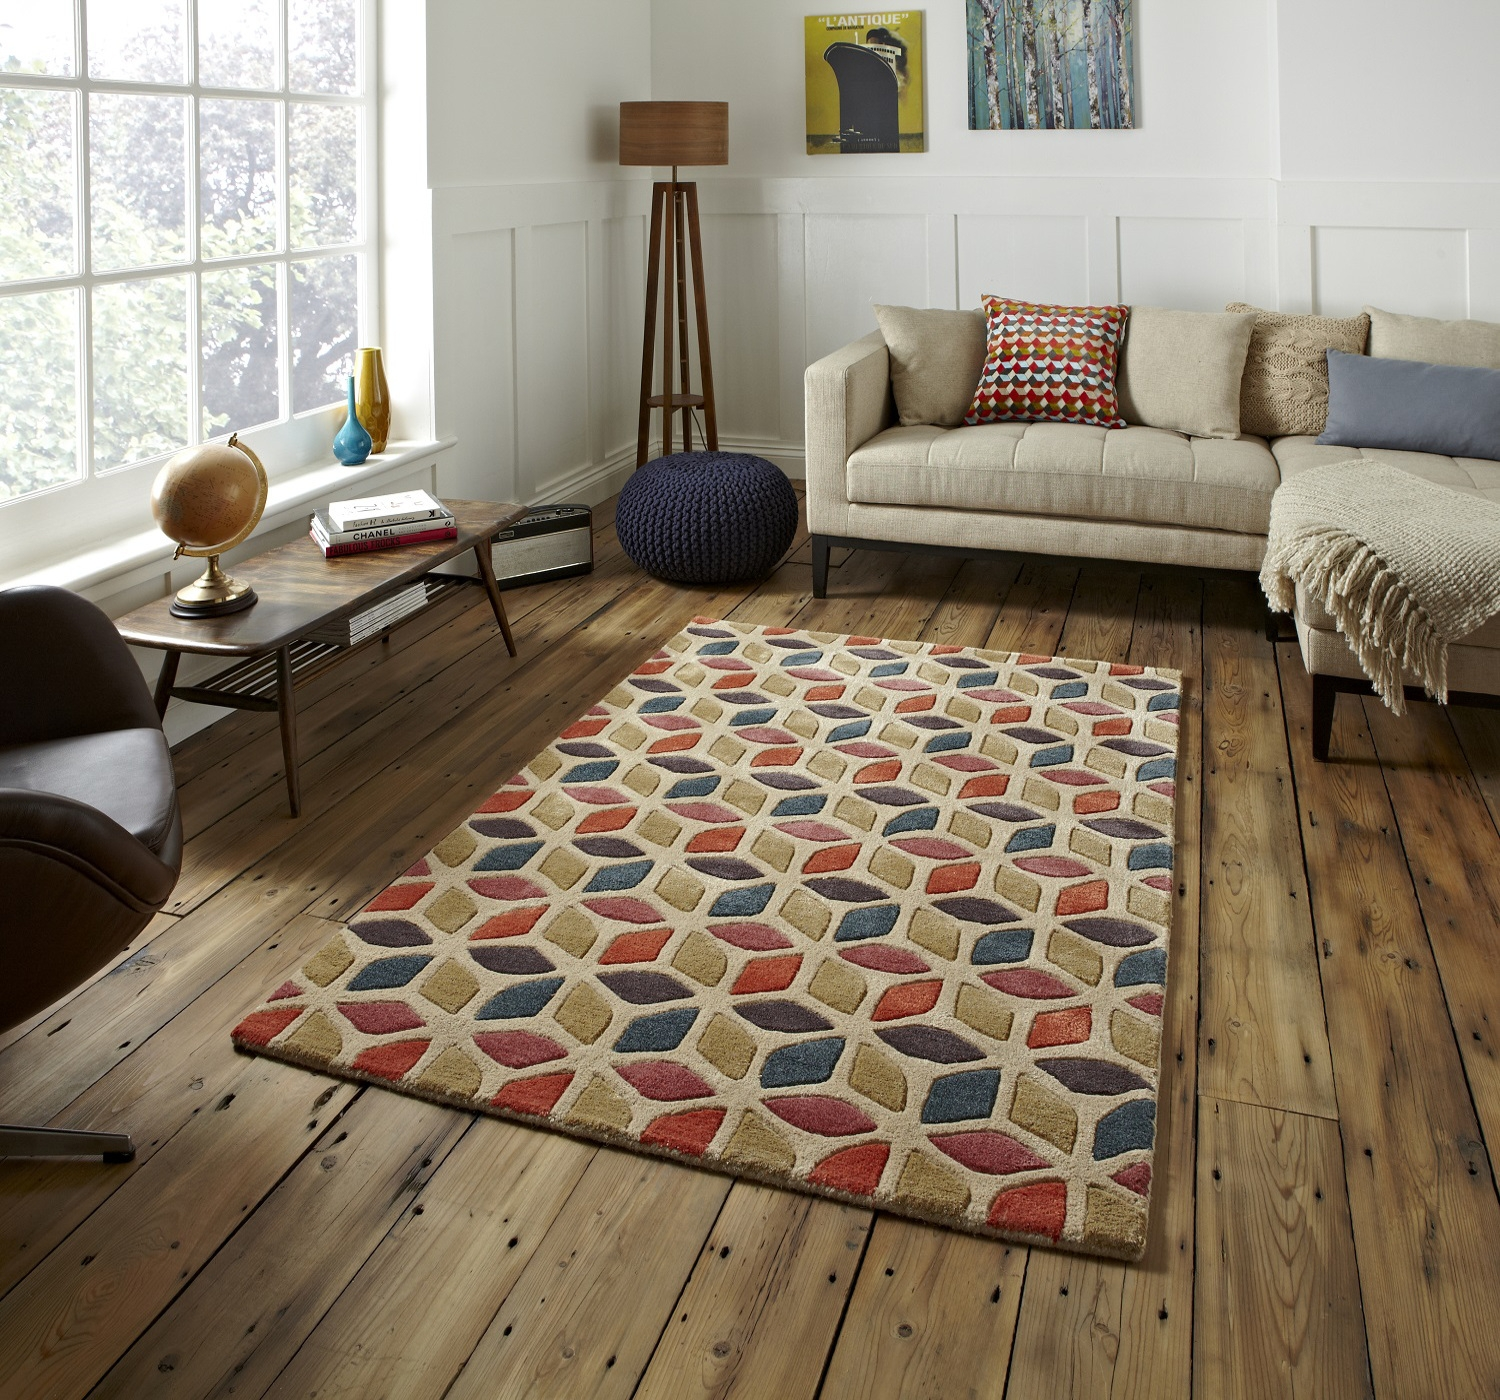 Geometric Design Rug Roselawnlutheran Within Large Geometric Rugs (View 8 of 15)